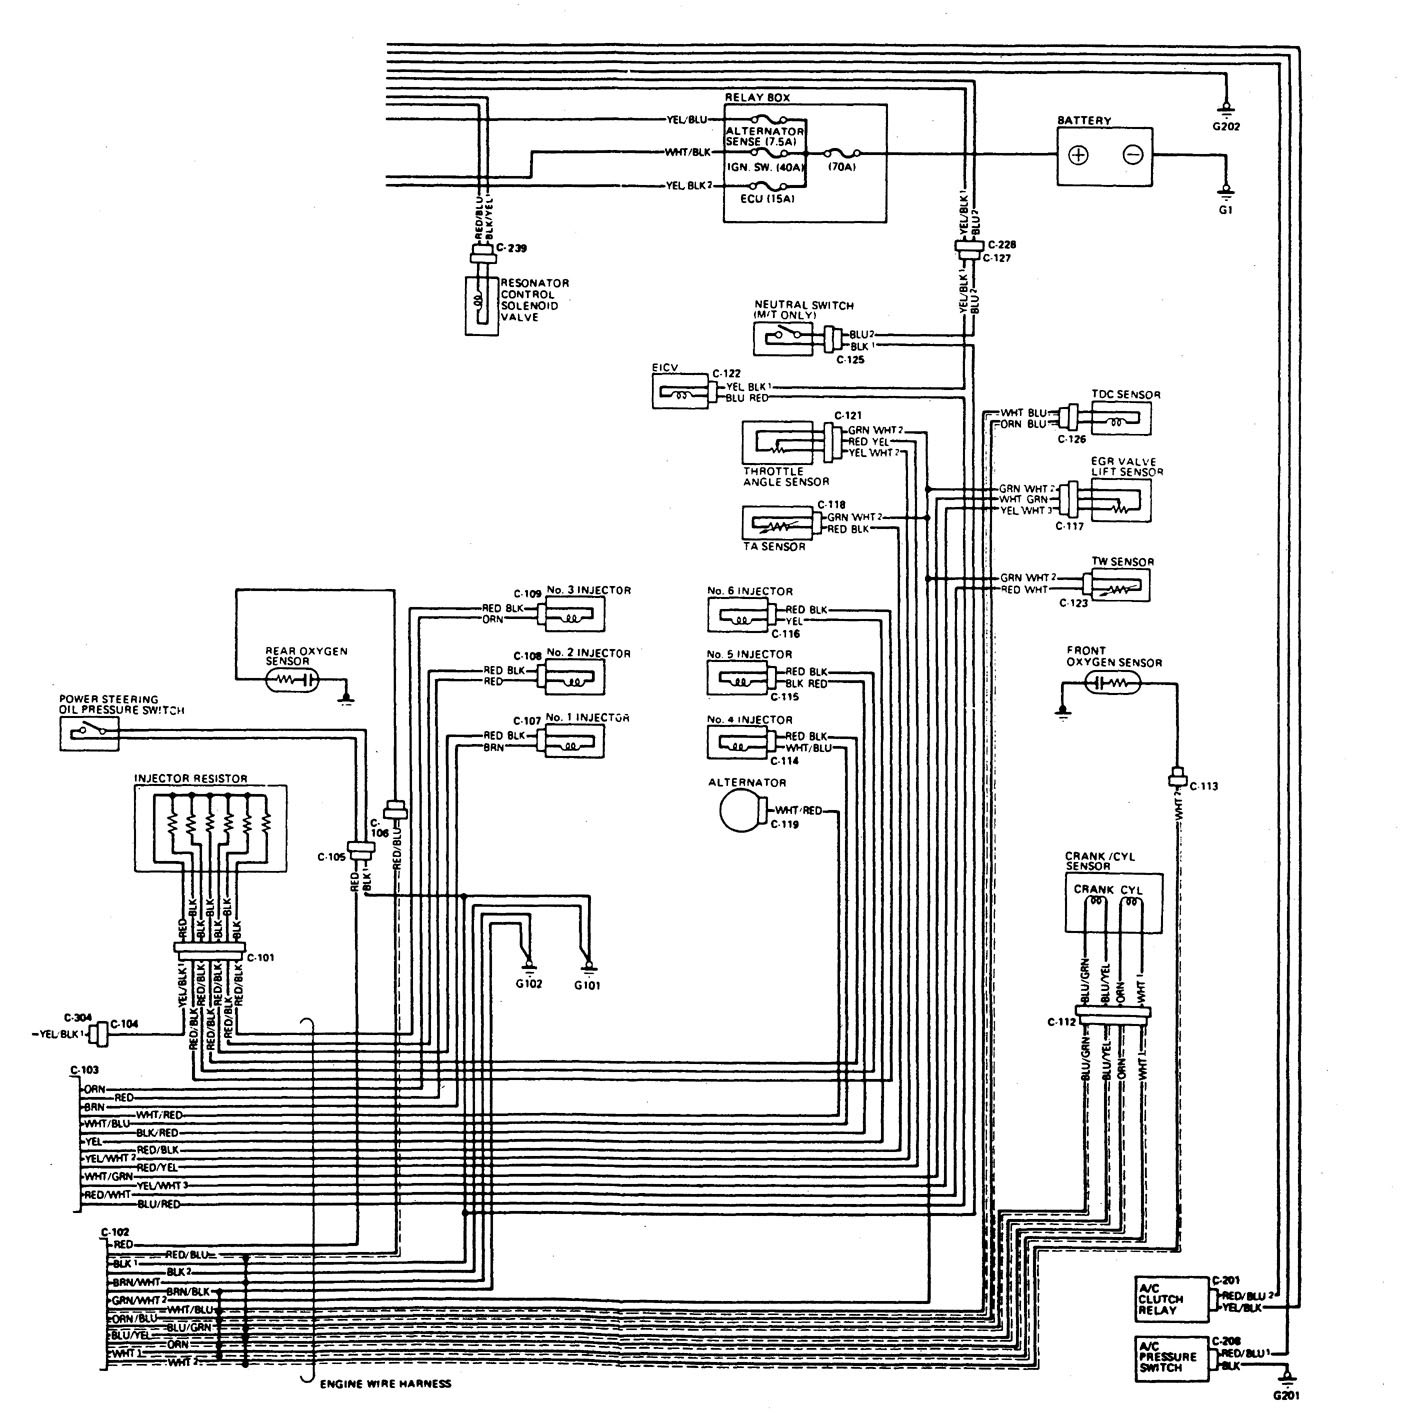 1989 ford festiva radio wiring diagram